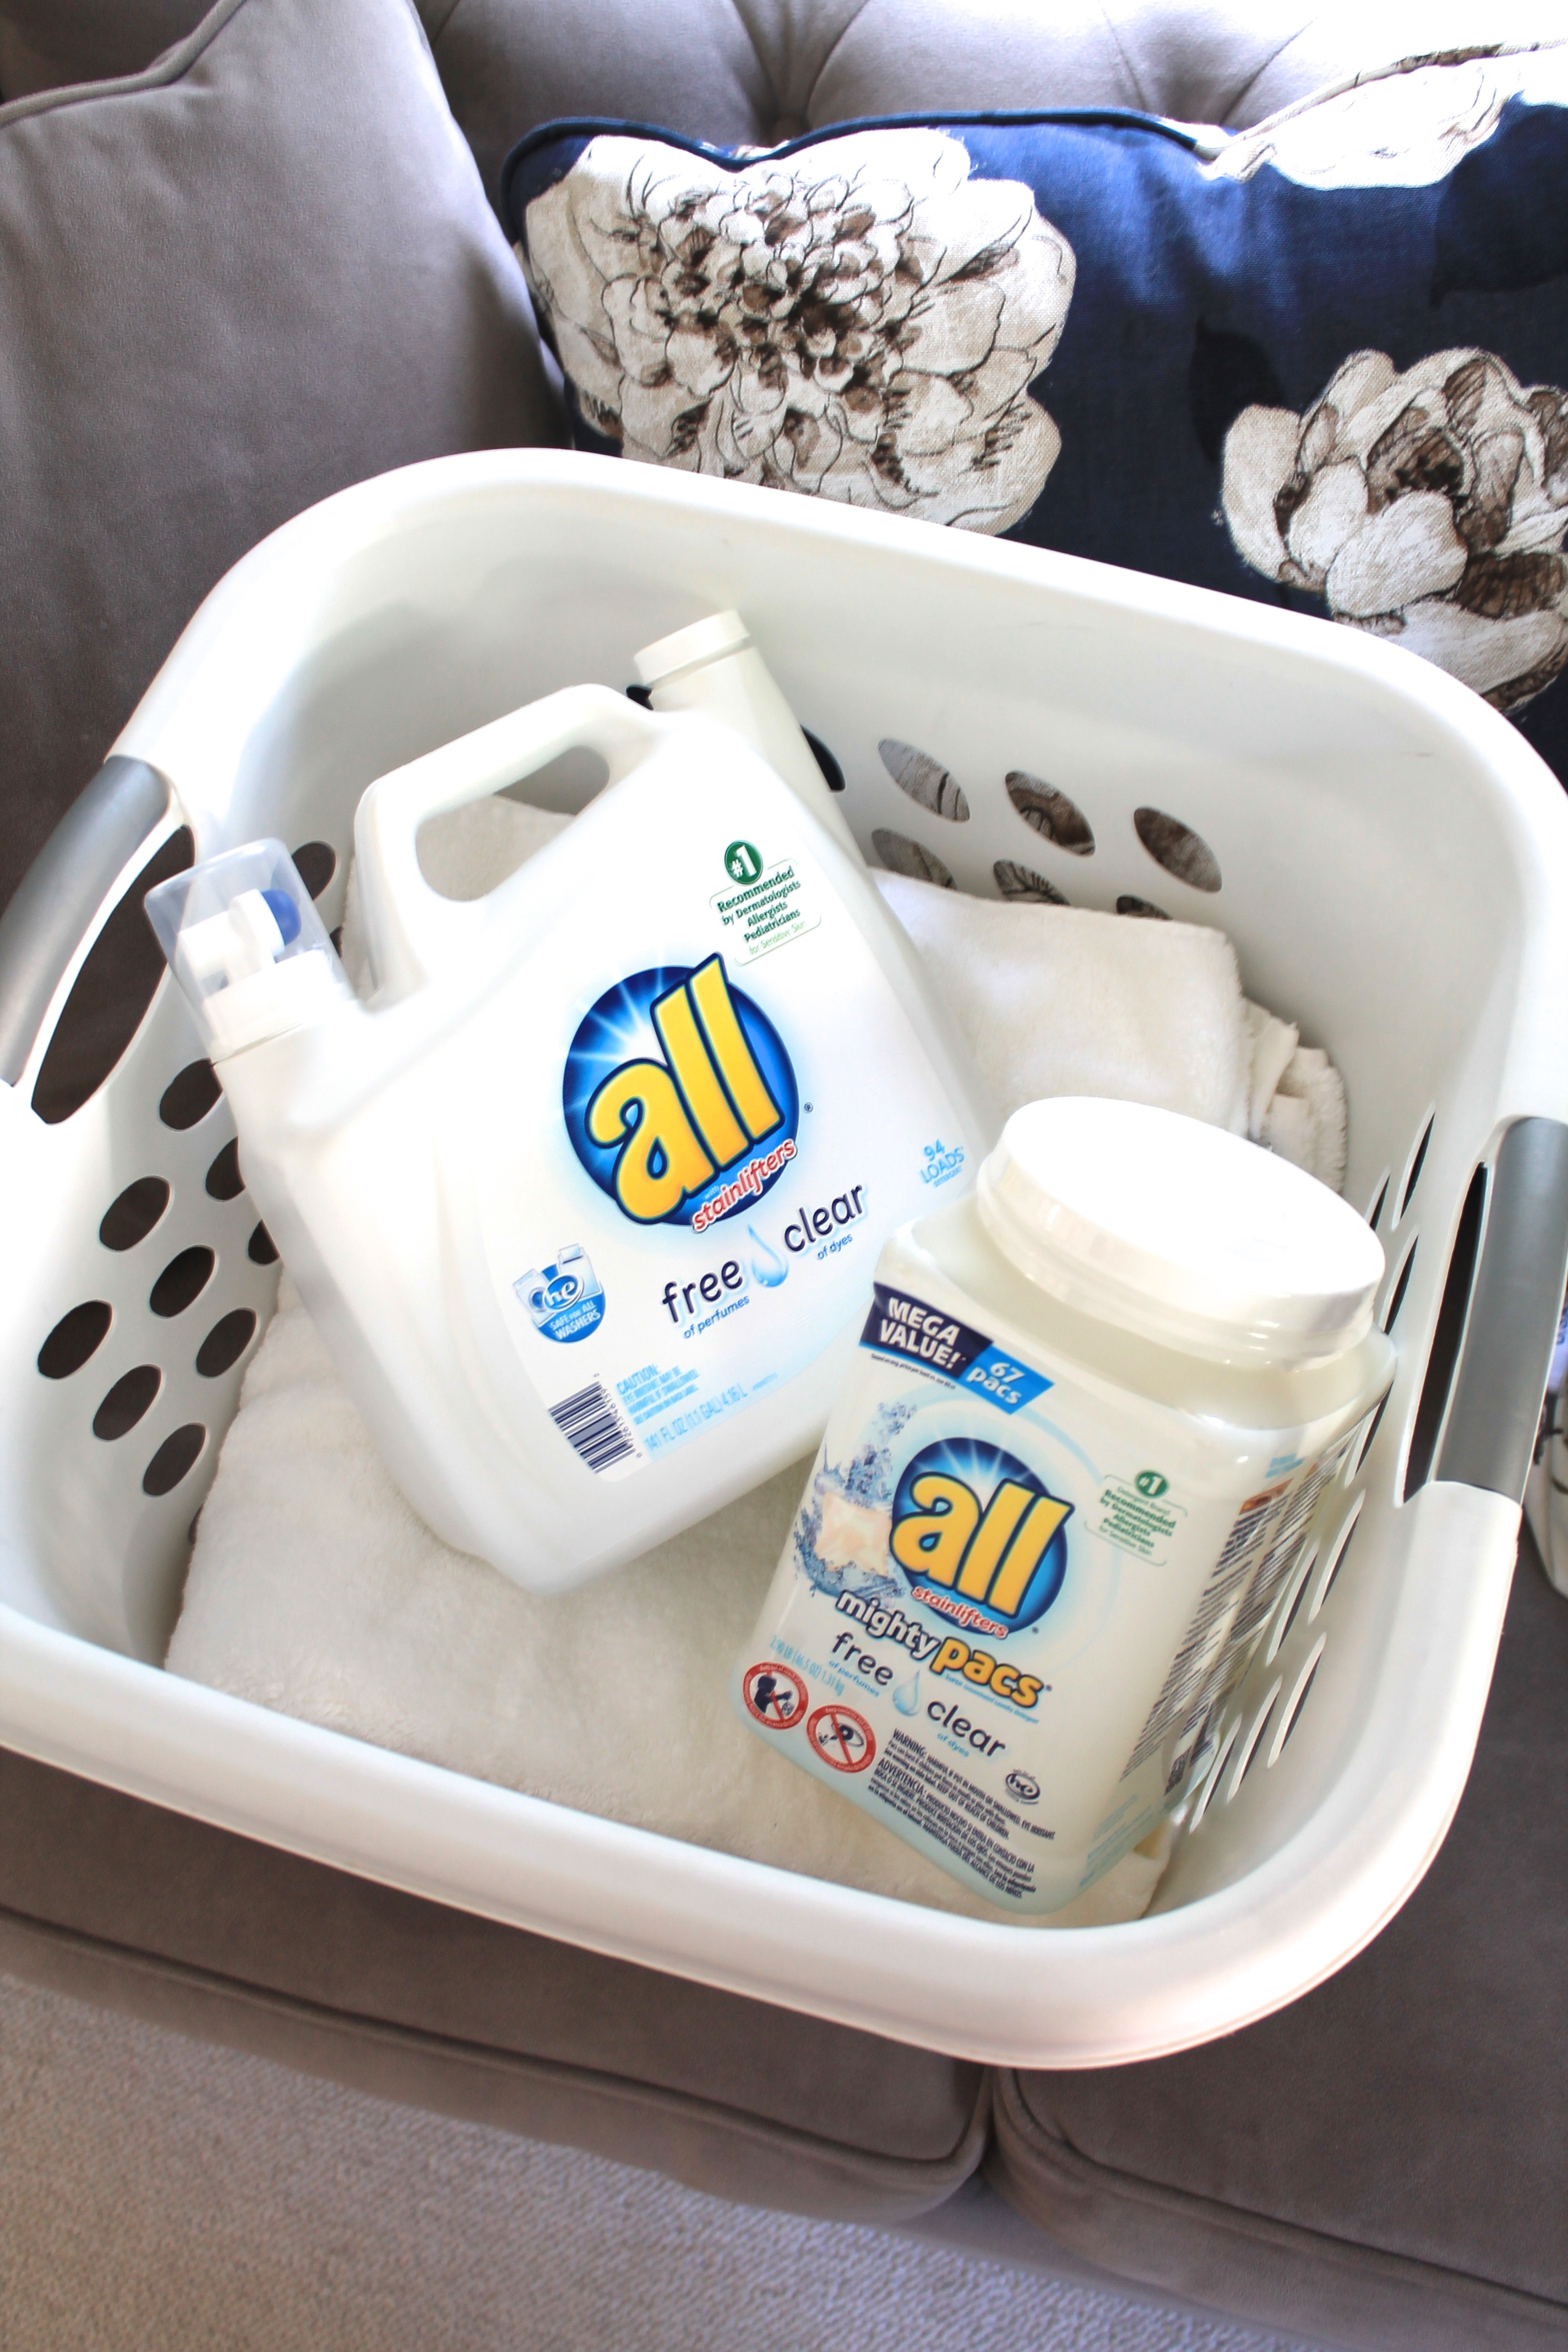 all free clear - detergent for sensitive skin // feathersandstripes.com